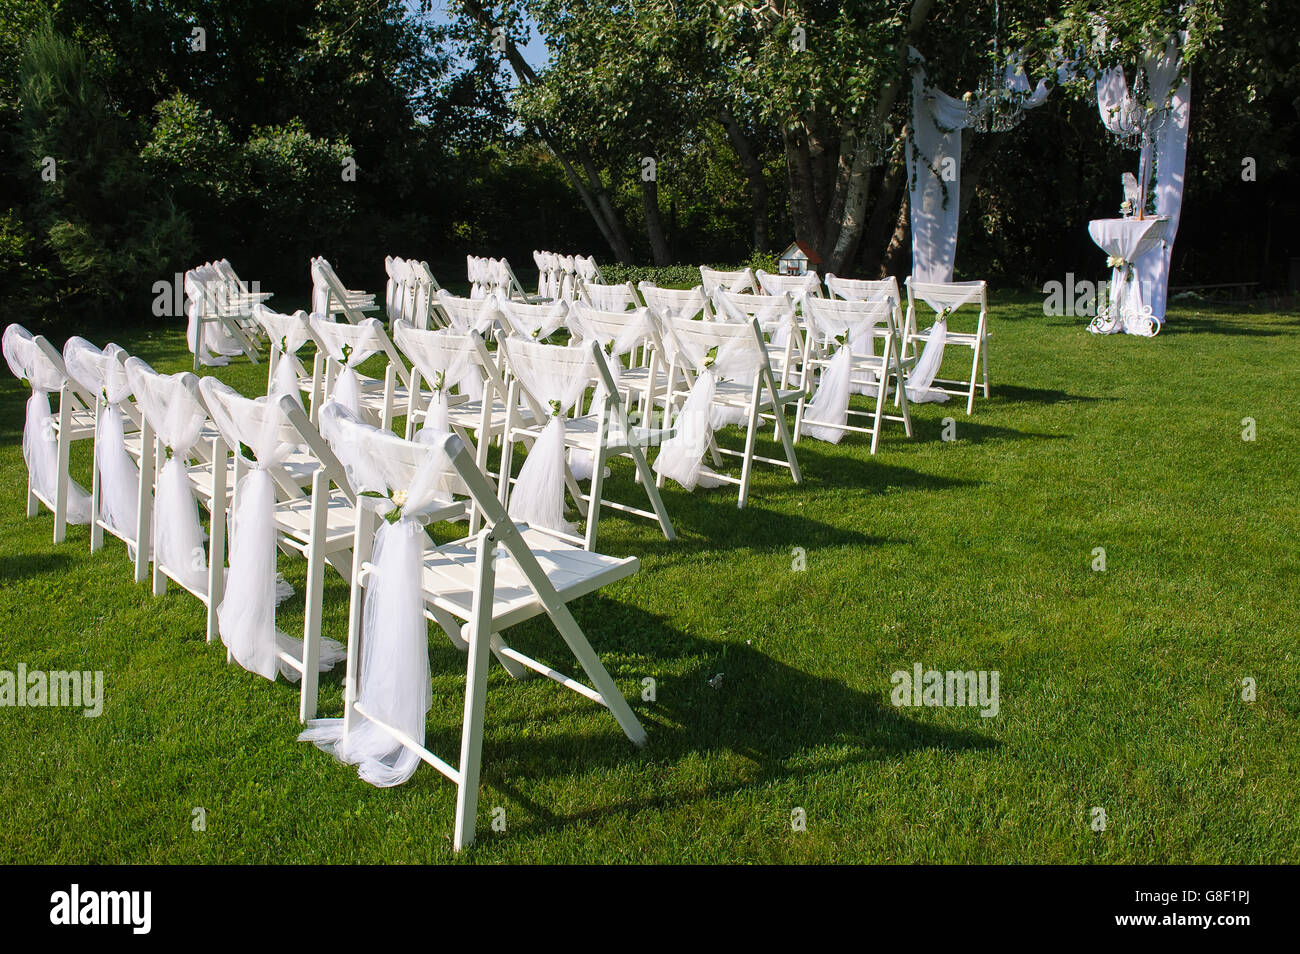 White Chairs At A Wedding Indoor Stock Photo: Arch For Wedding Ceremony. White Decorated Chairs On A